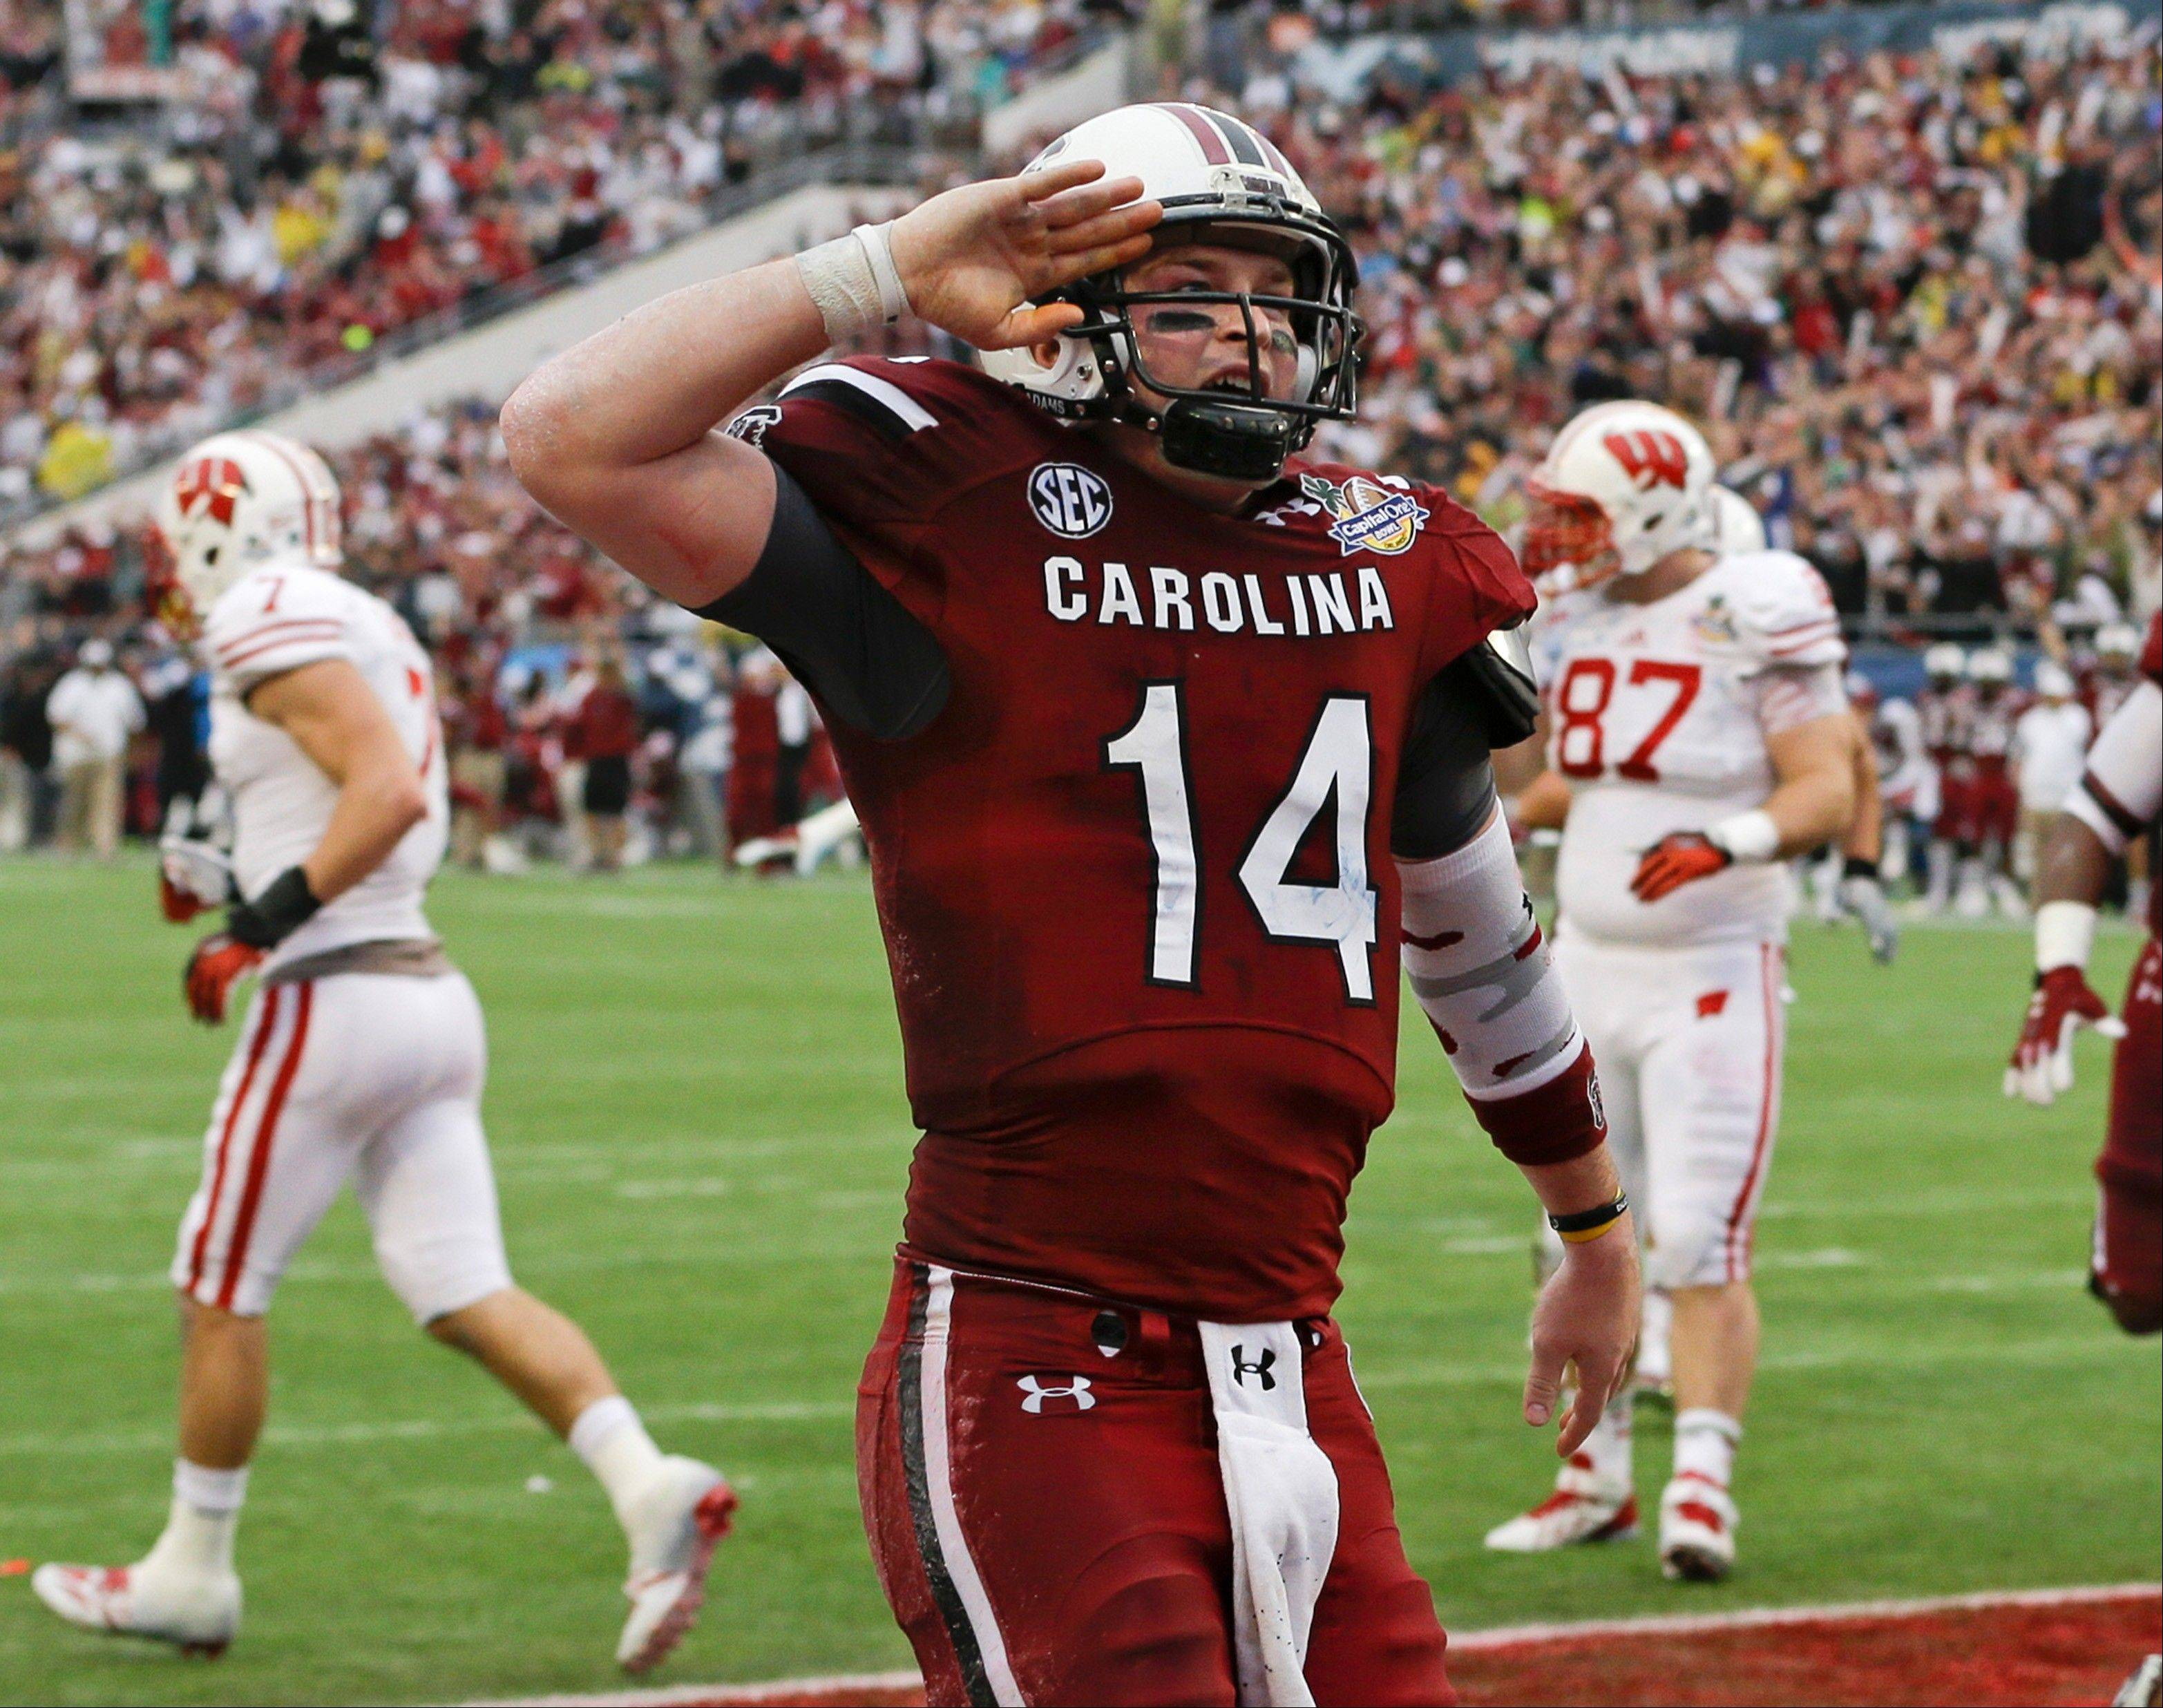 South Carolina quarterback Connor Shaw (14) salutes towards fans after catching a touchdown on a pass from receiver Bruce Ellington during the first half of the Capital One Bowl NCAA college football game against Wisconsin in Orlando, Fla., Wednesday, Jan. 1, 2014.